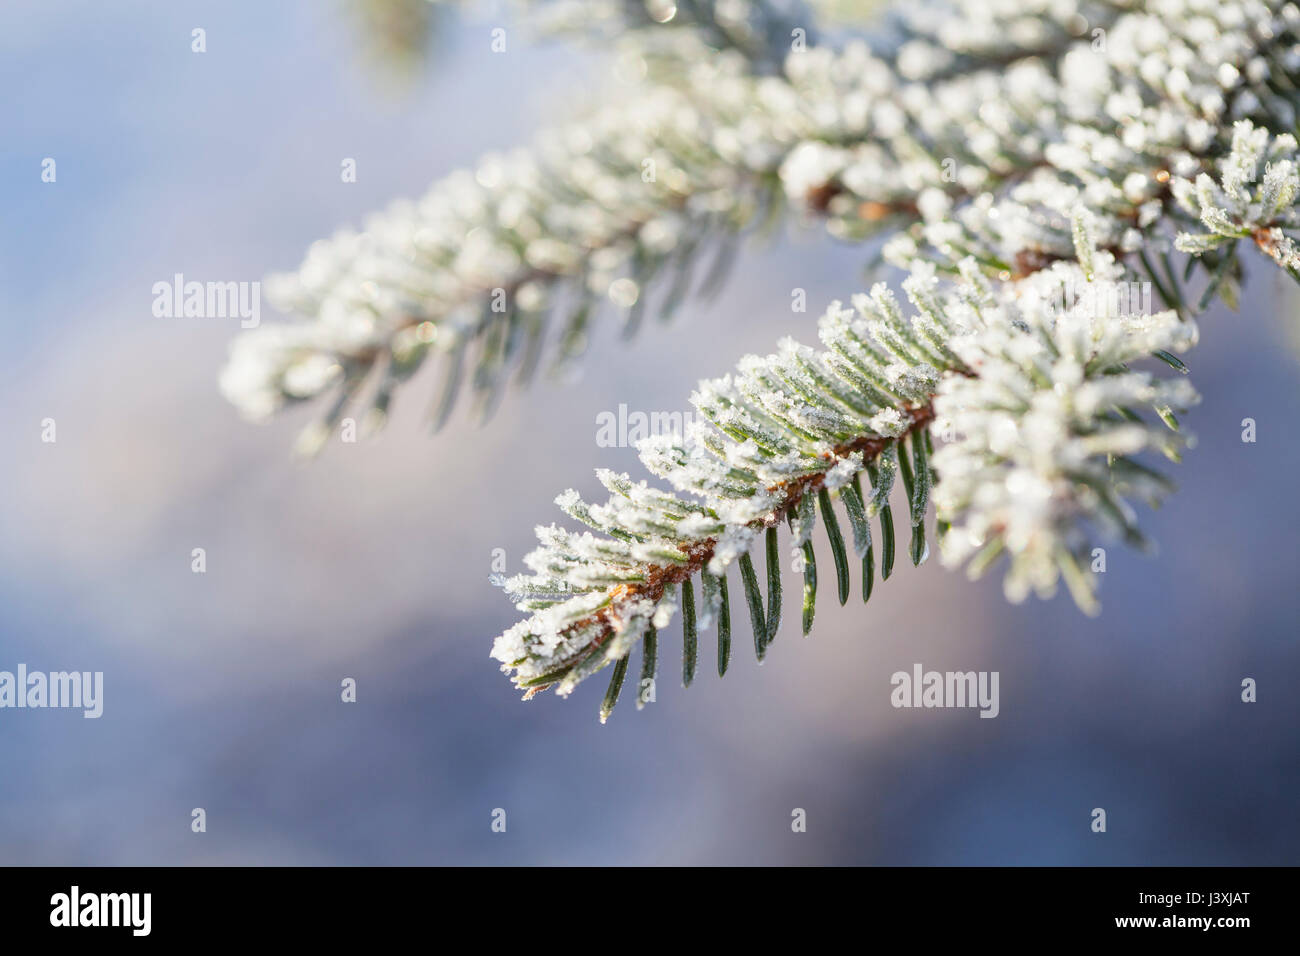 Close up of frost on branch and needles of Norway Spruce (Picea abies) - Stock Image